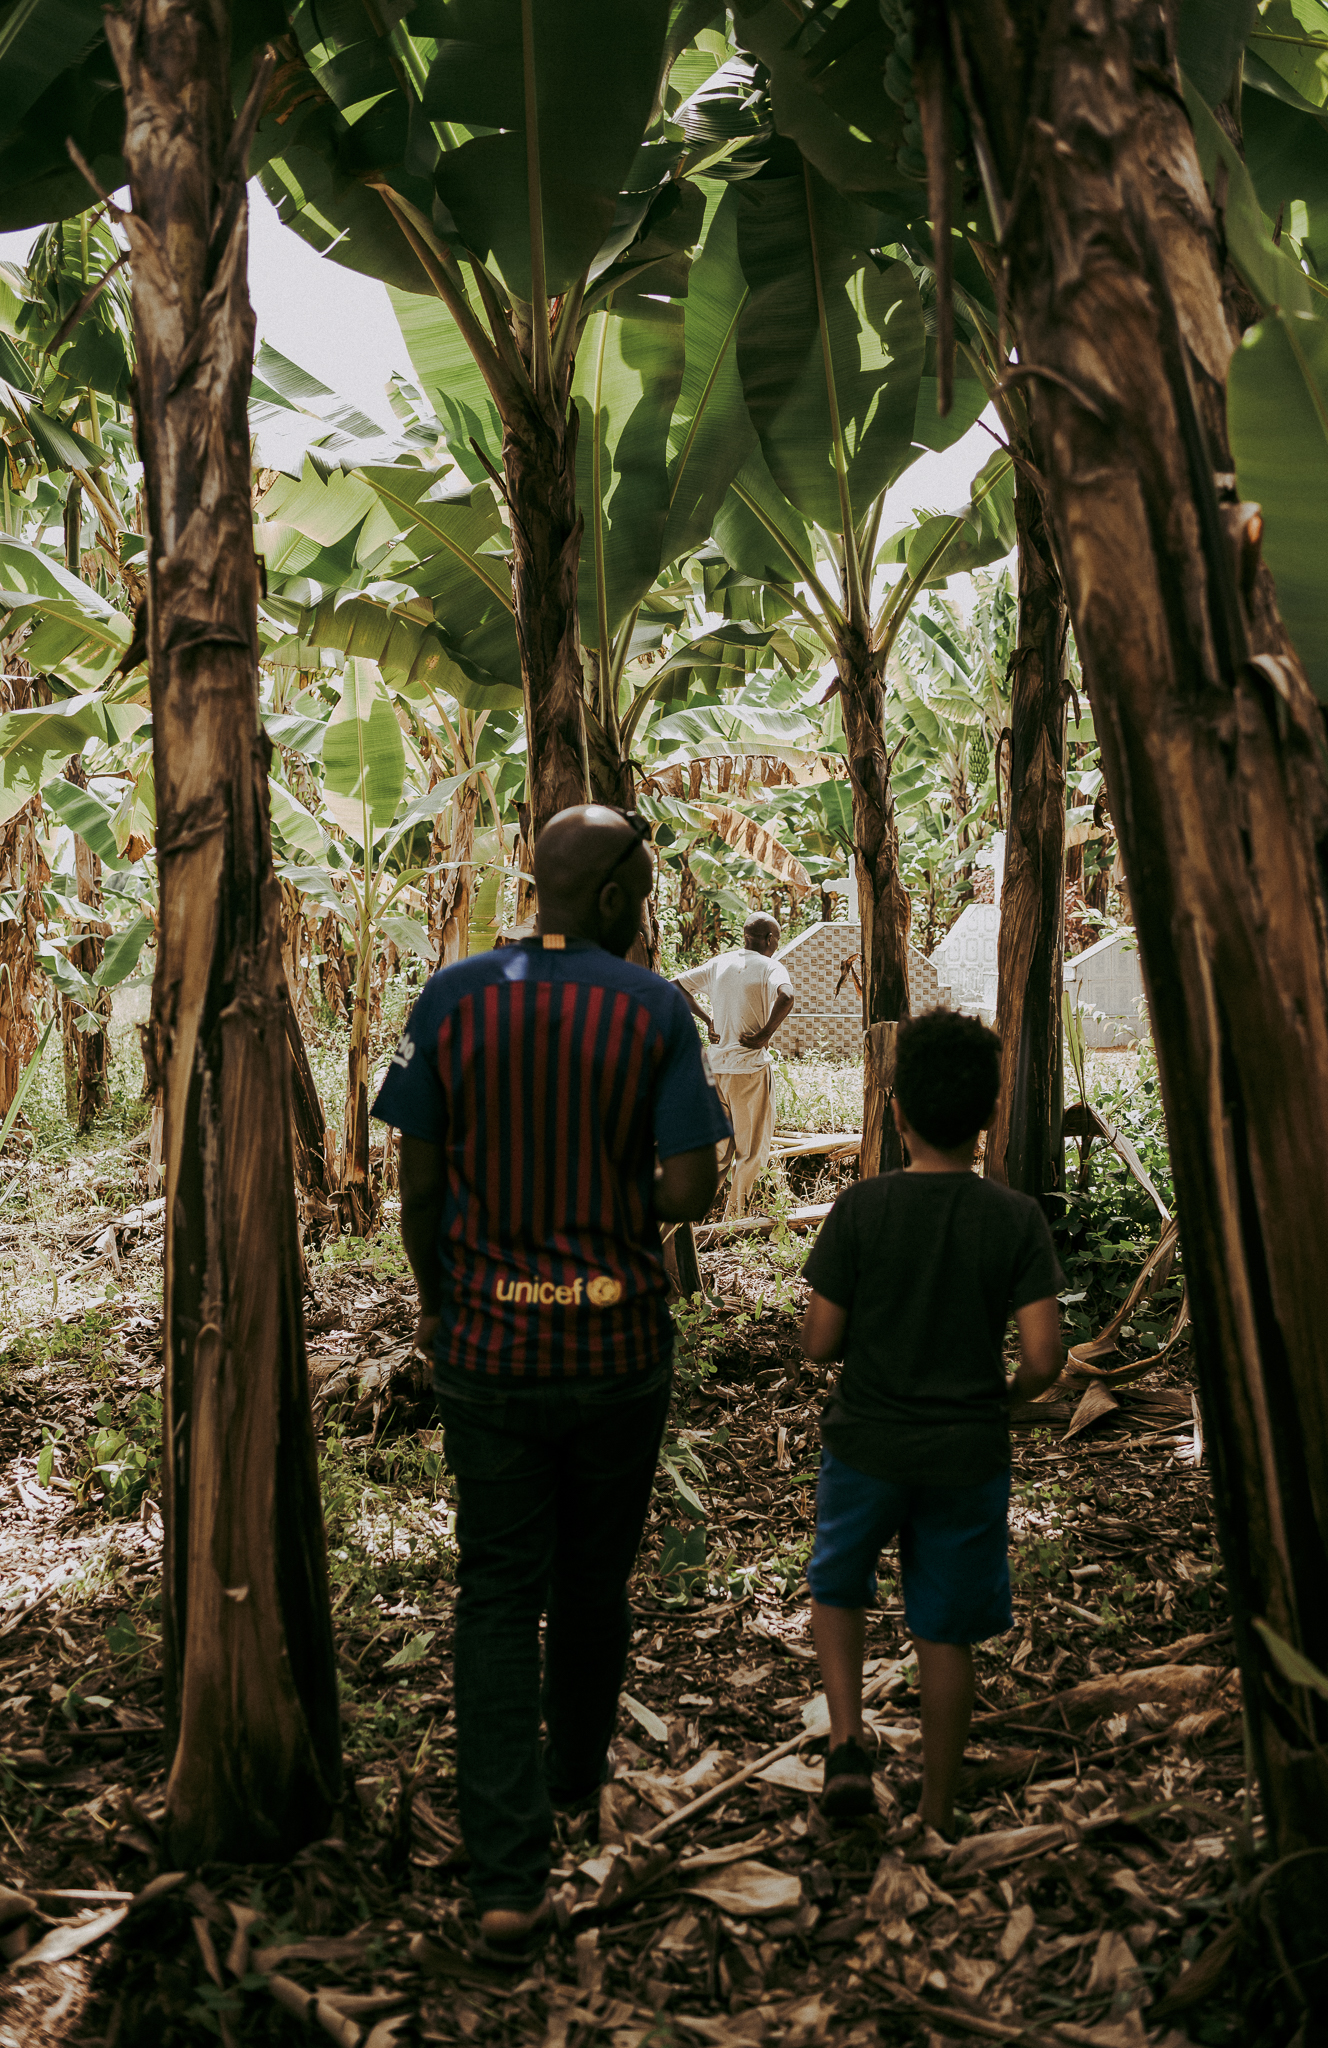 As I was going through the photos, i noted this one particularly. Here is a photo of Mwita and Jordan walking through a dense canopy of banana trees through the property his mom grew up on, to view the graves of his grandparents. You can see the graves in the far right of the photo, Jordans great-grandparents, whom he never met but shares a middle name with. Generations later this is the very spot, the root, half of their heritage.